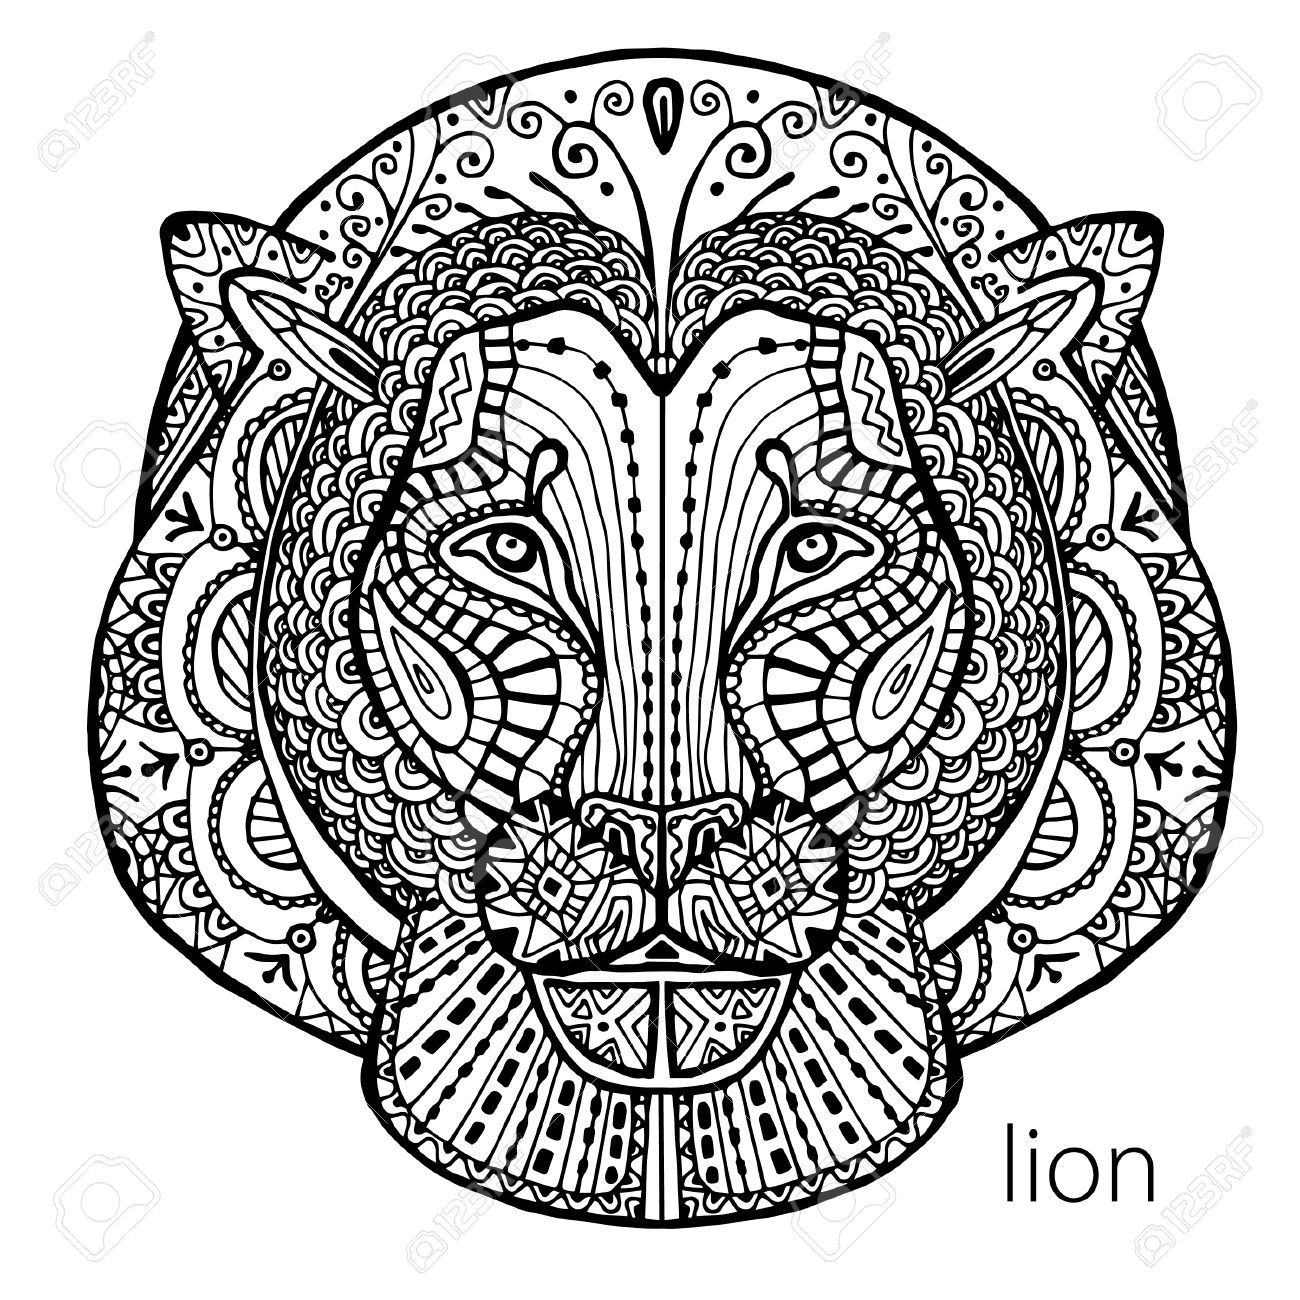 Stress coloring books for adults - The Black And White Lion Print With Ethnic Patterns Coloring Book For Adults Antistress